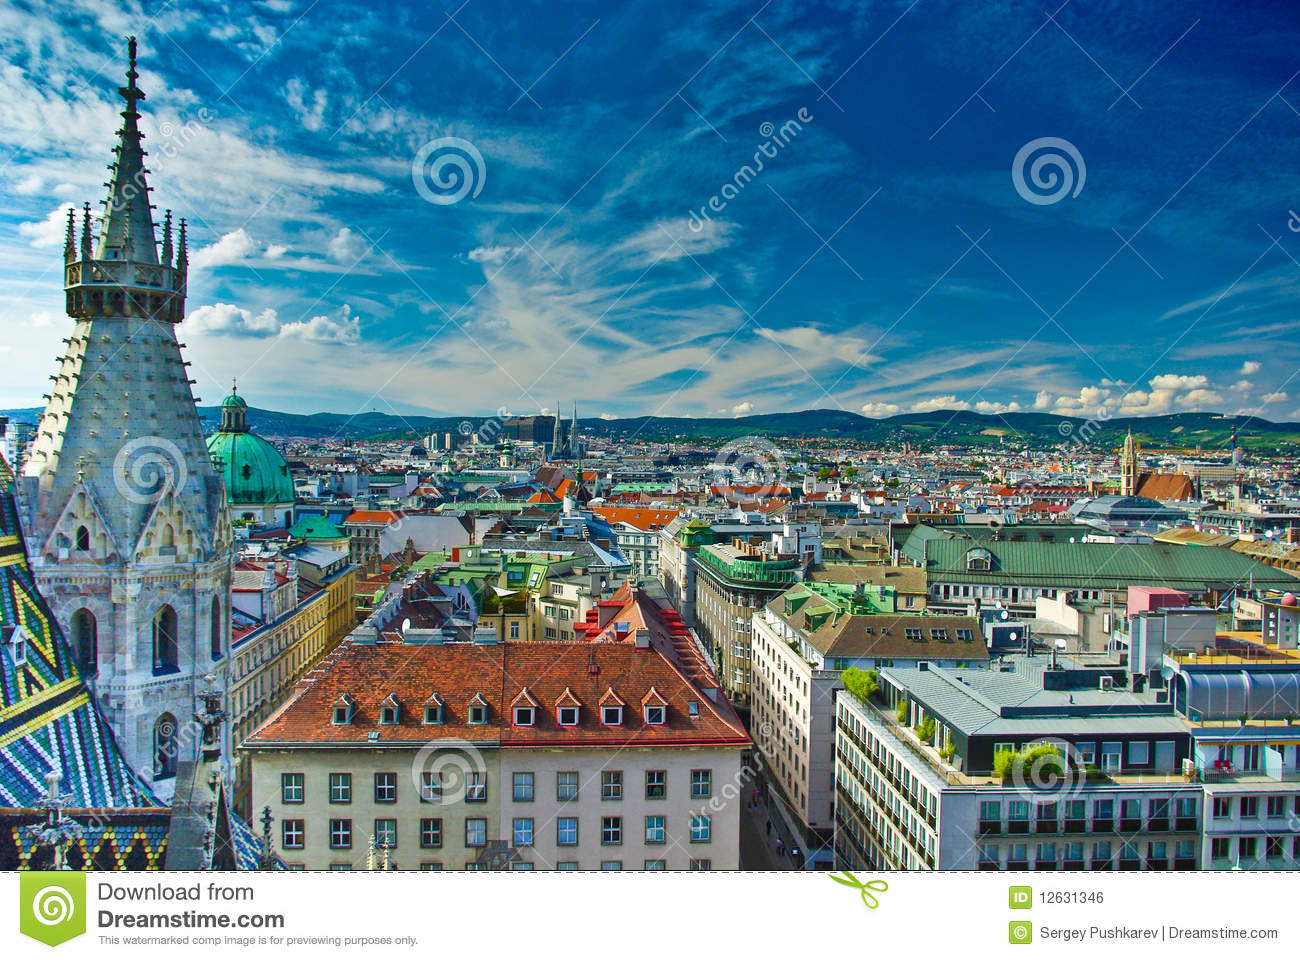 Vienna City Centre Top View Stock Photo - Image: 12631346